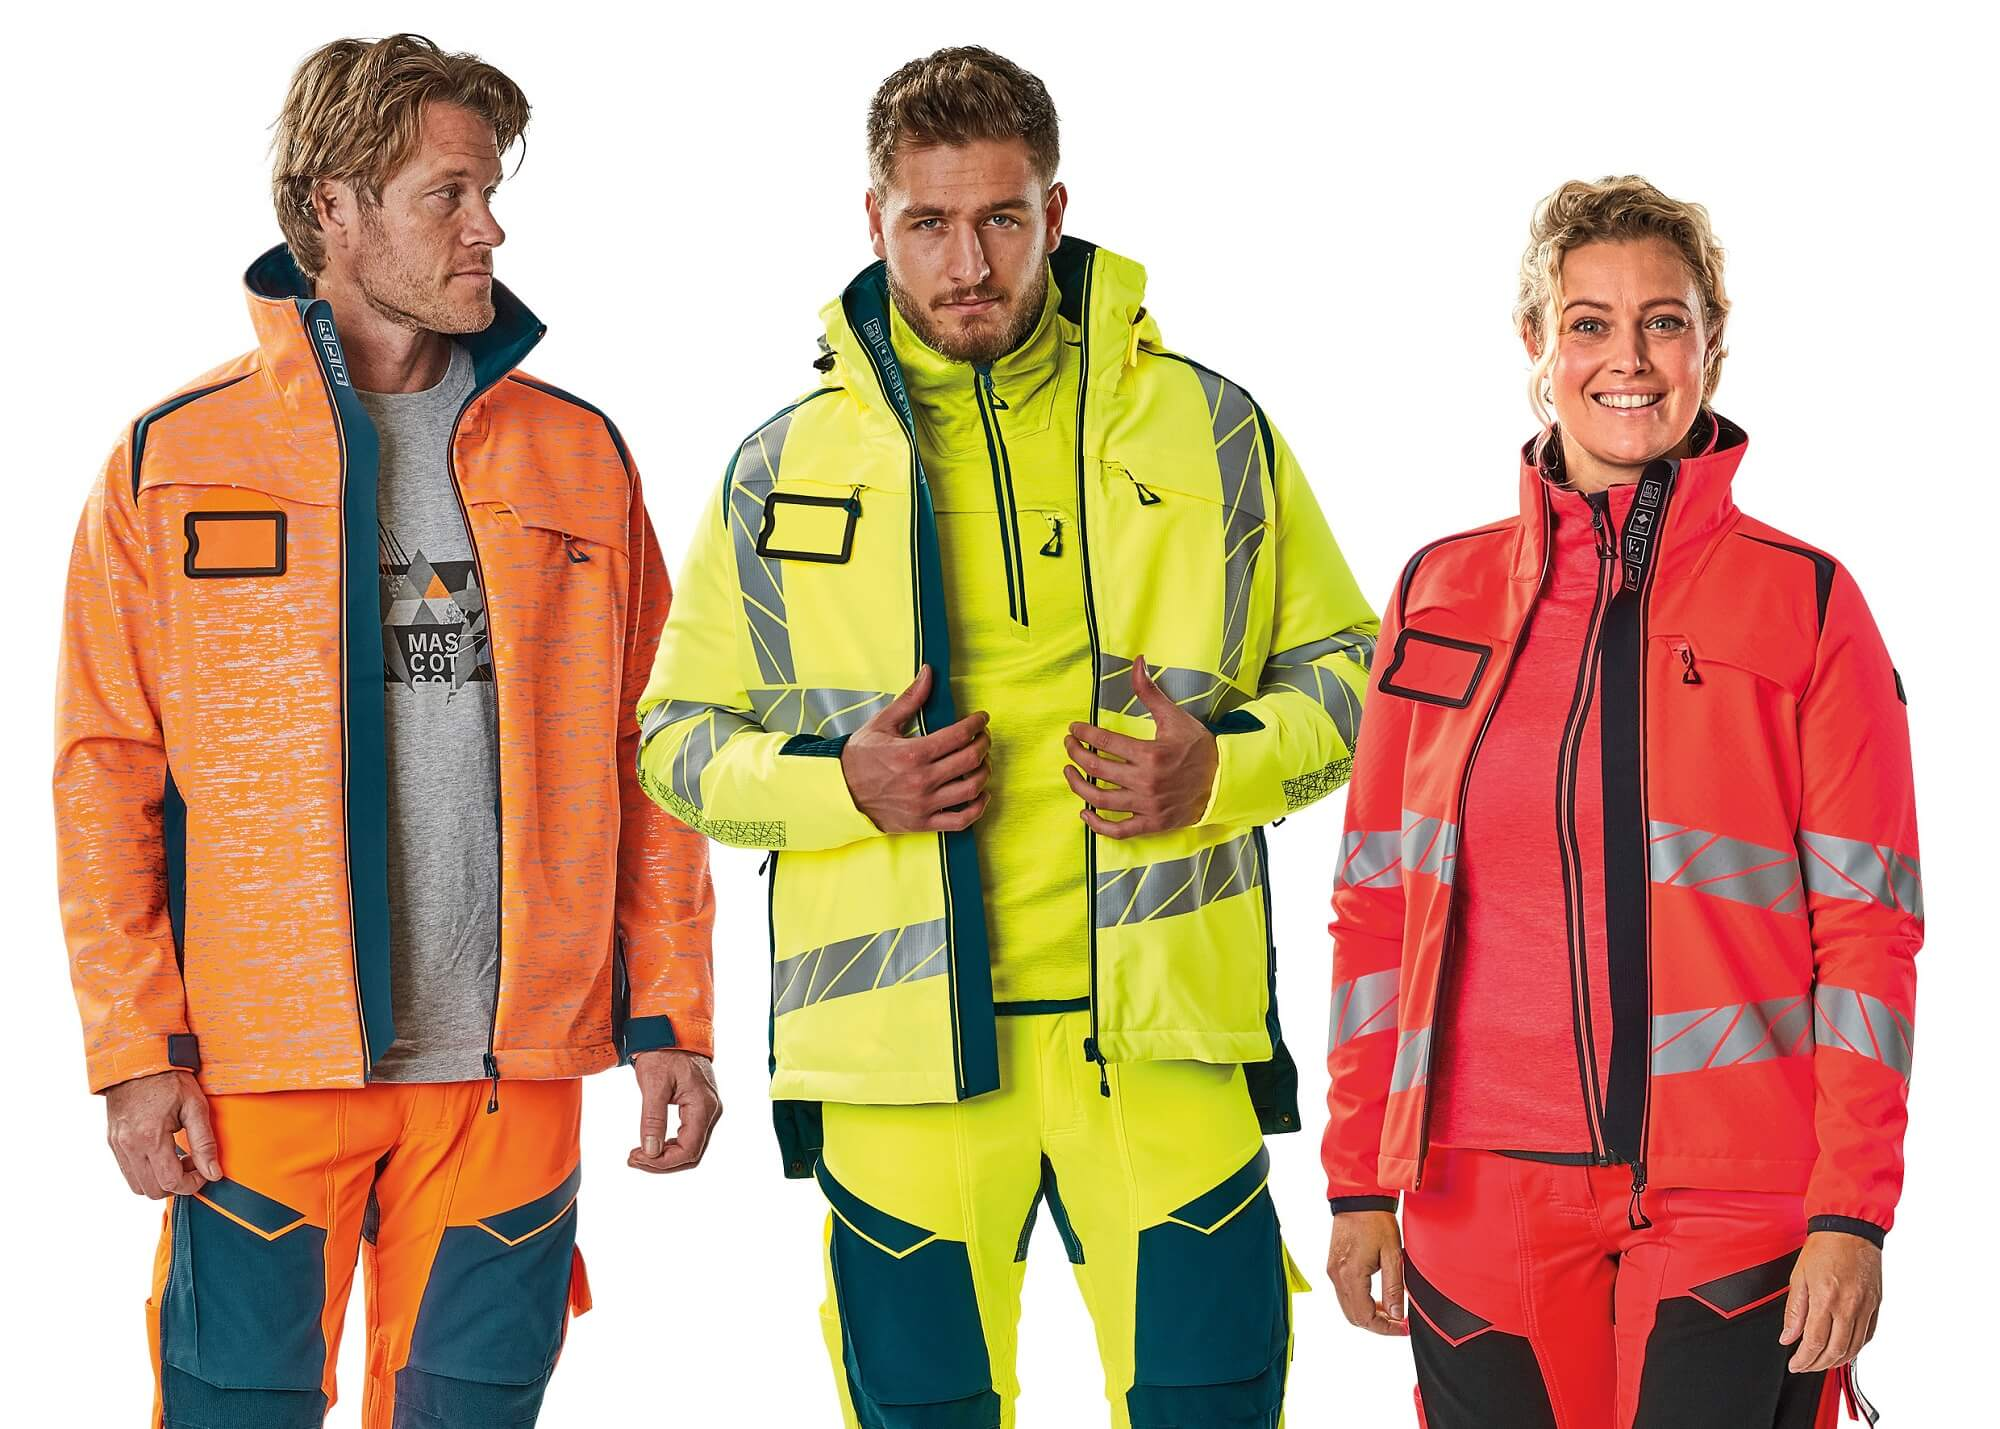 Men & Woman - MASCOT® ACCELERATE SAFE Safety clothing